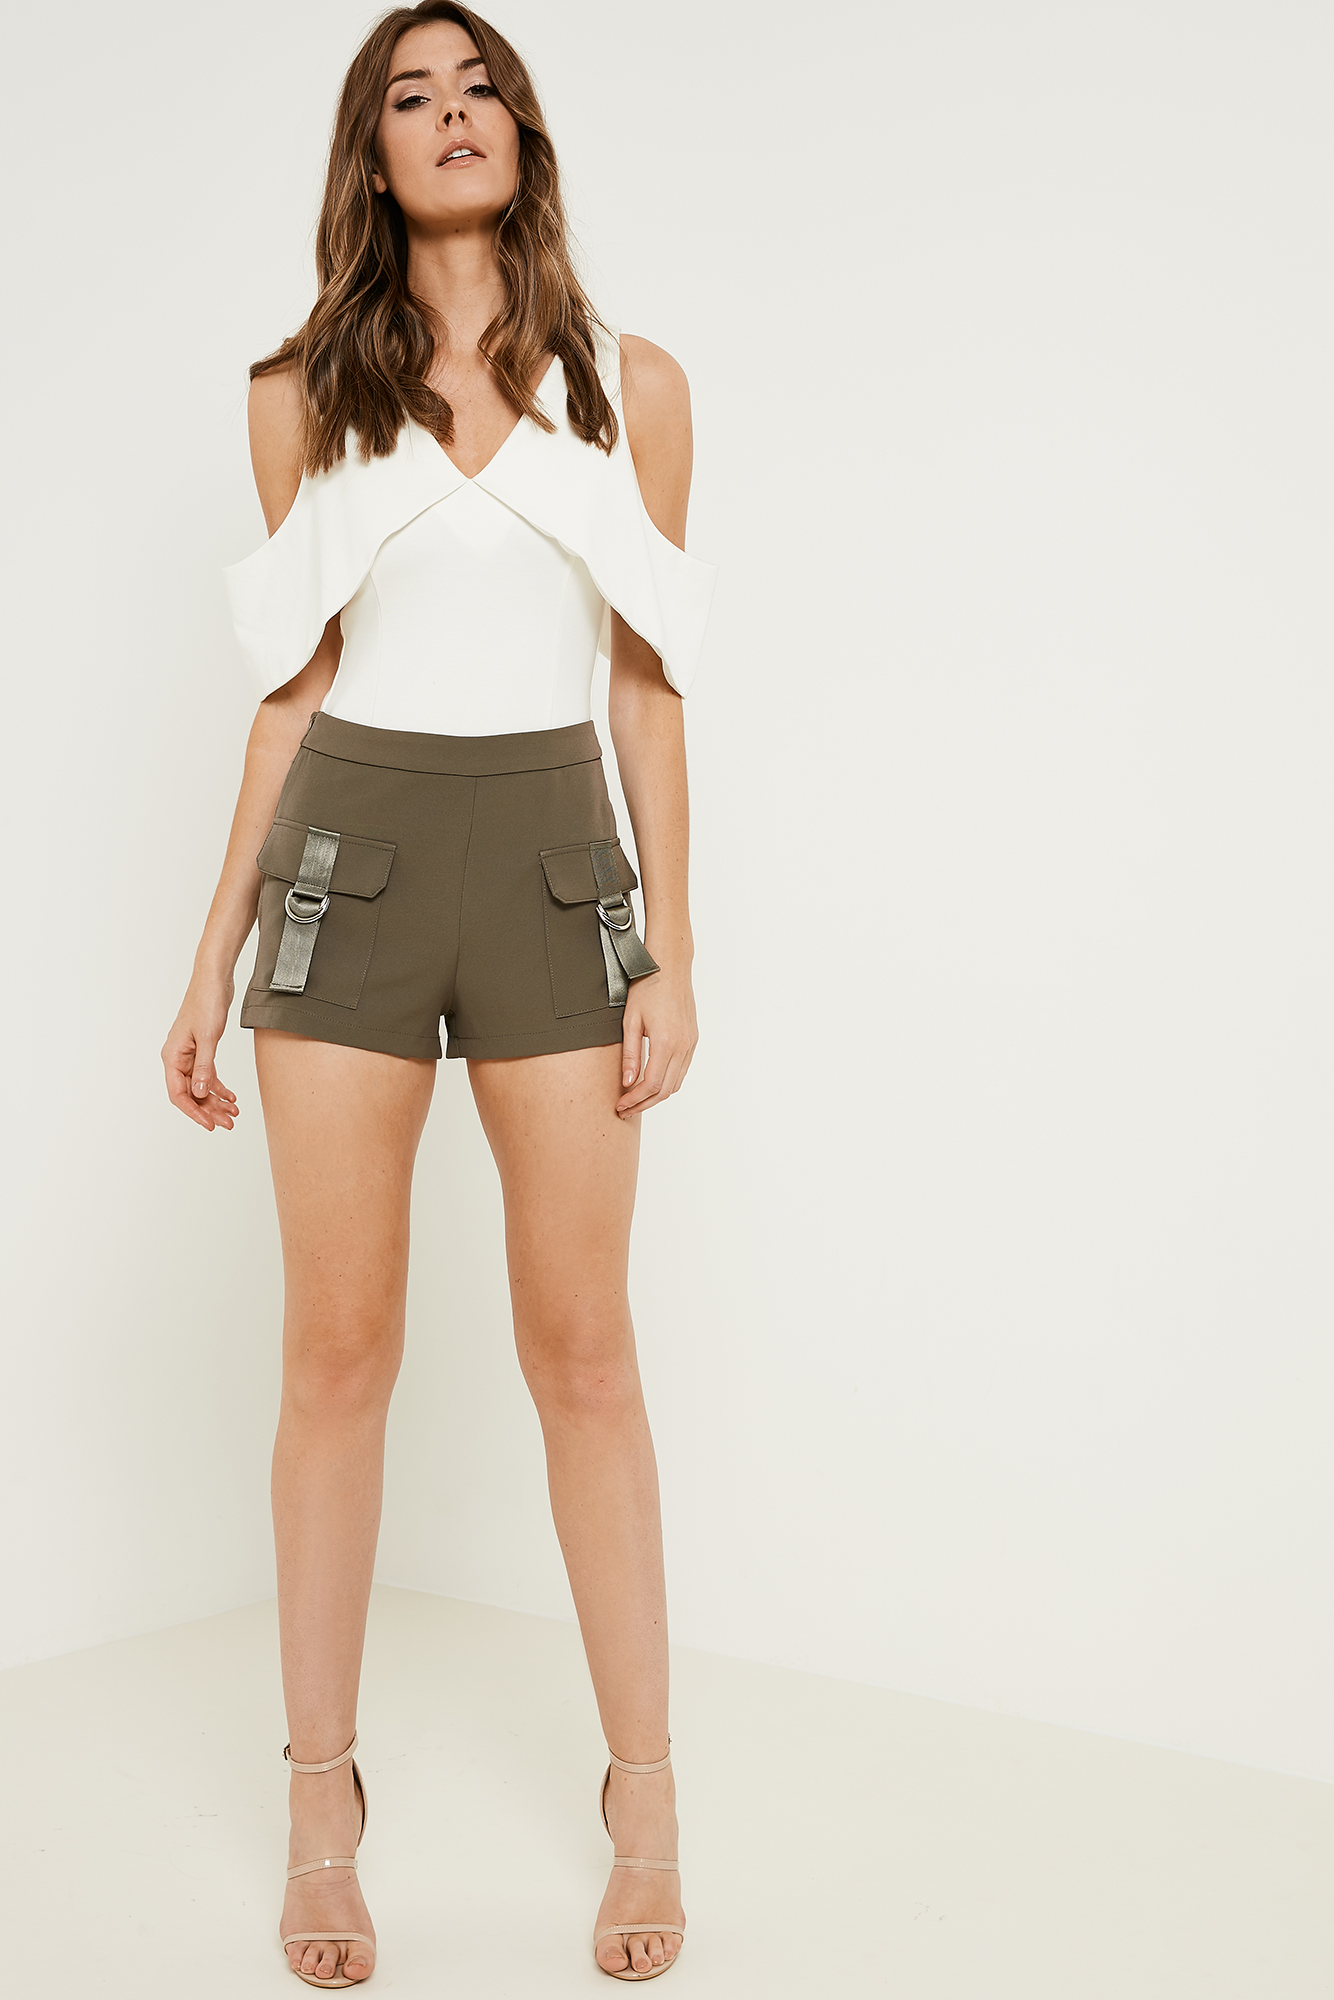 Lavish Alice High Waisted Cargo Shorts